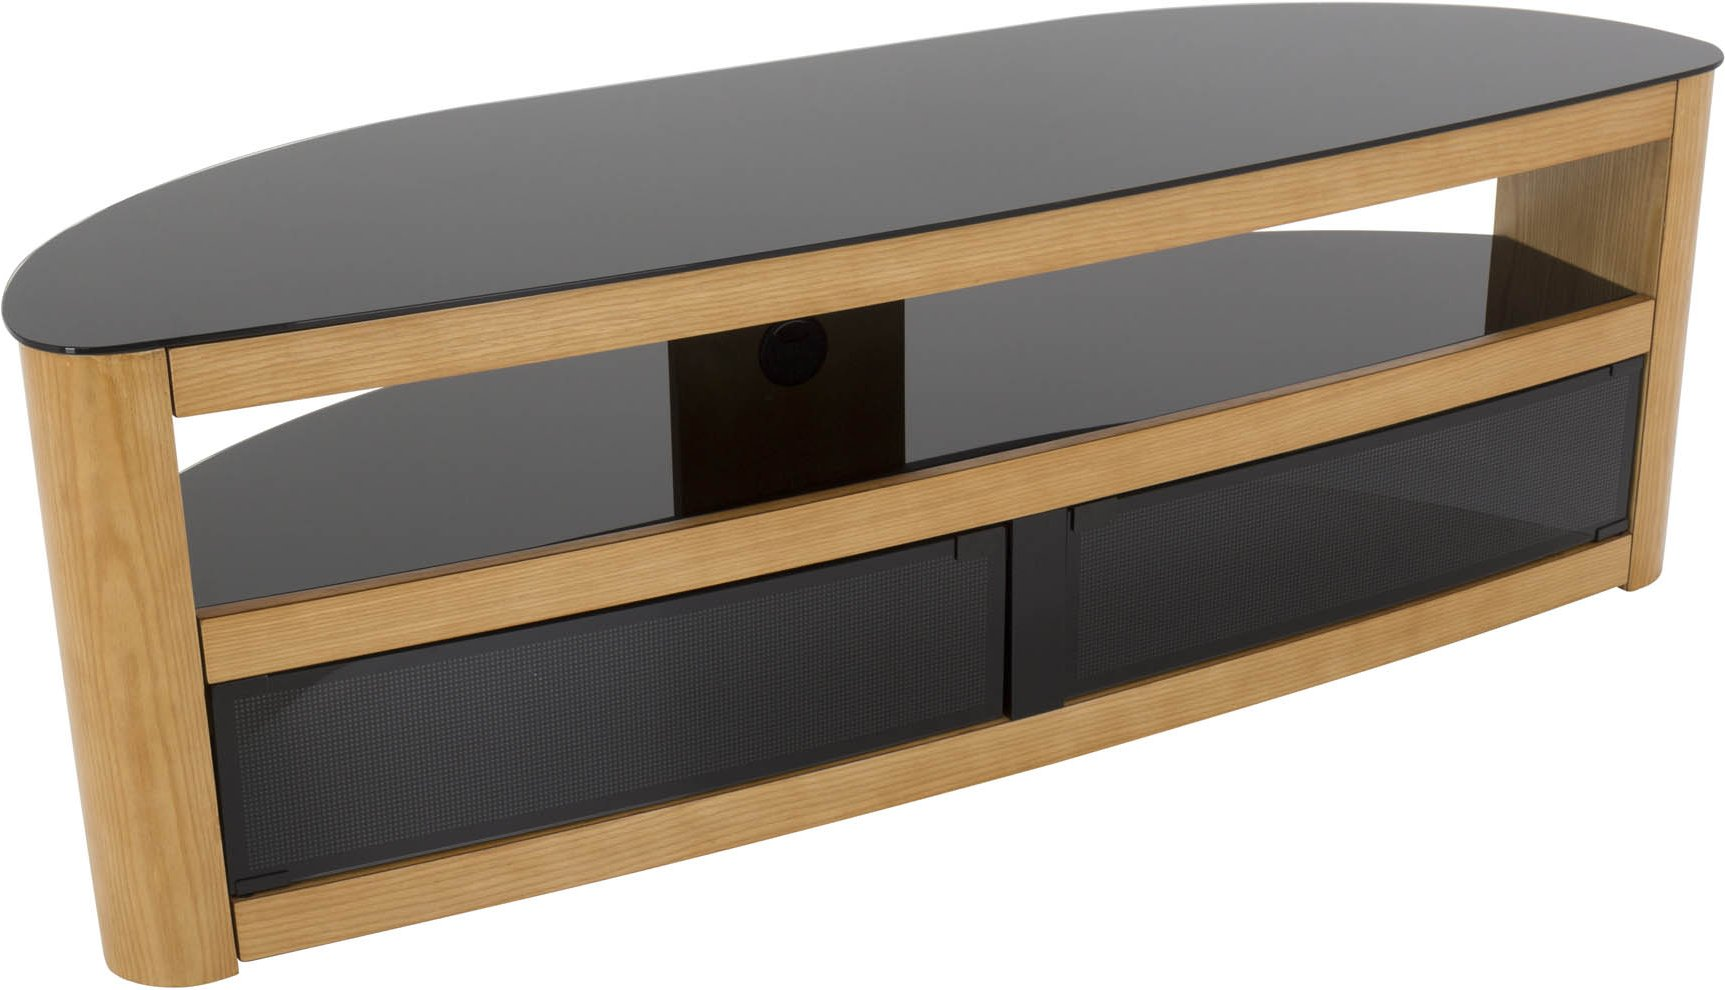 new product 60a36 6eca9 AVF Burghley FS1500BURO Oak TV Stand for up to 70 TVs